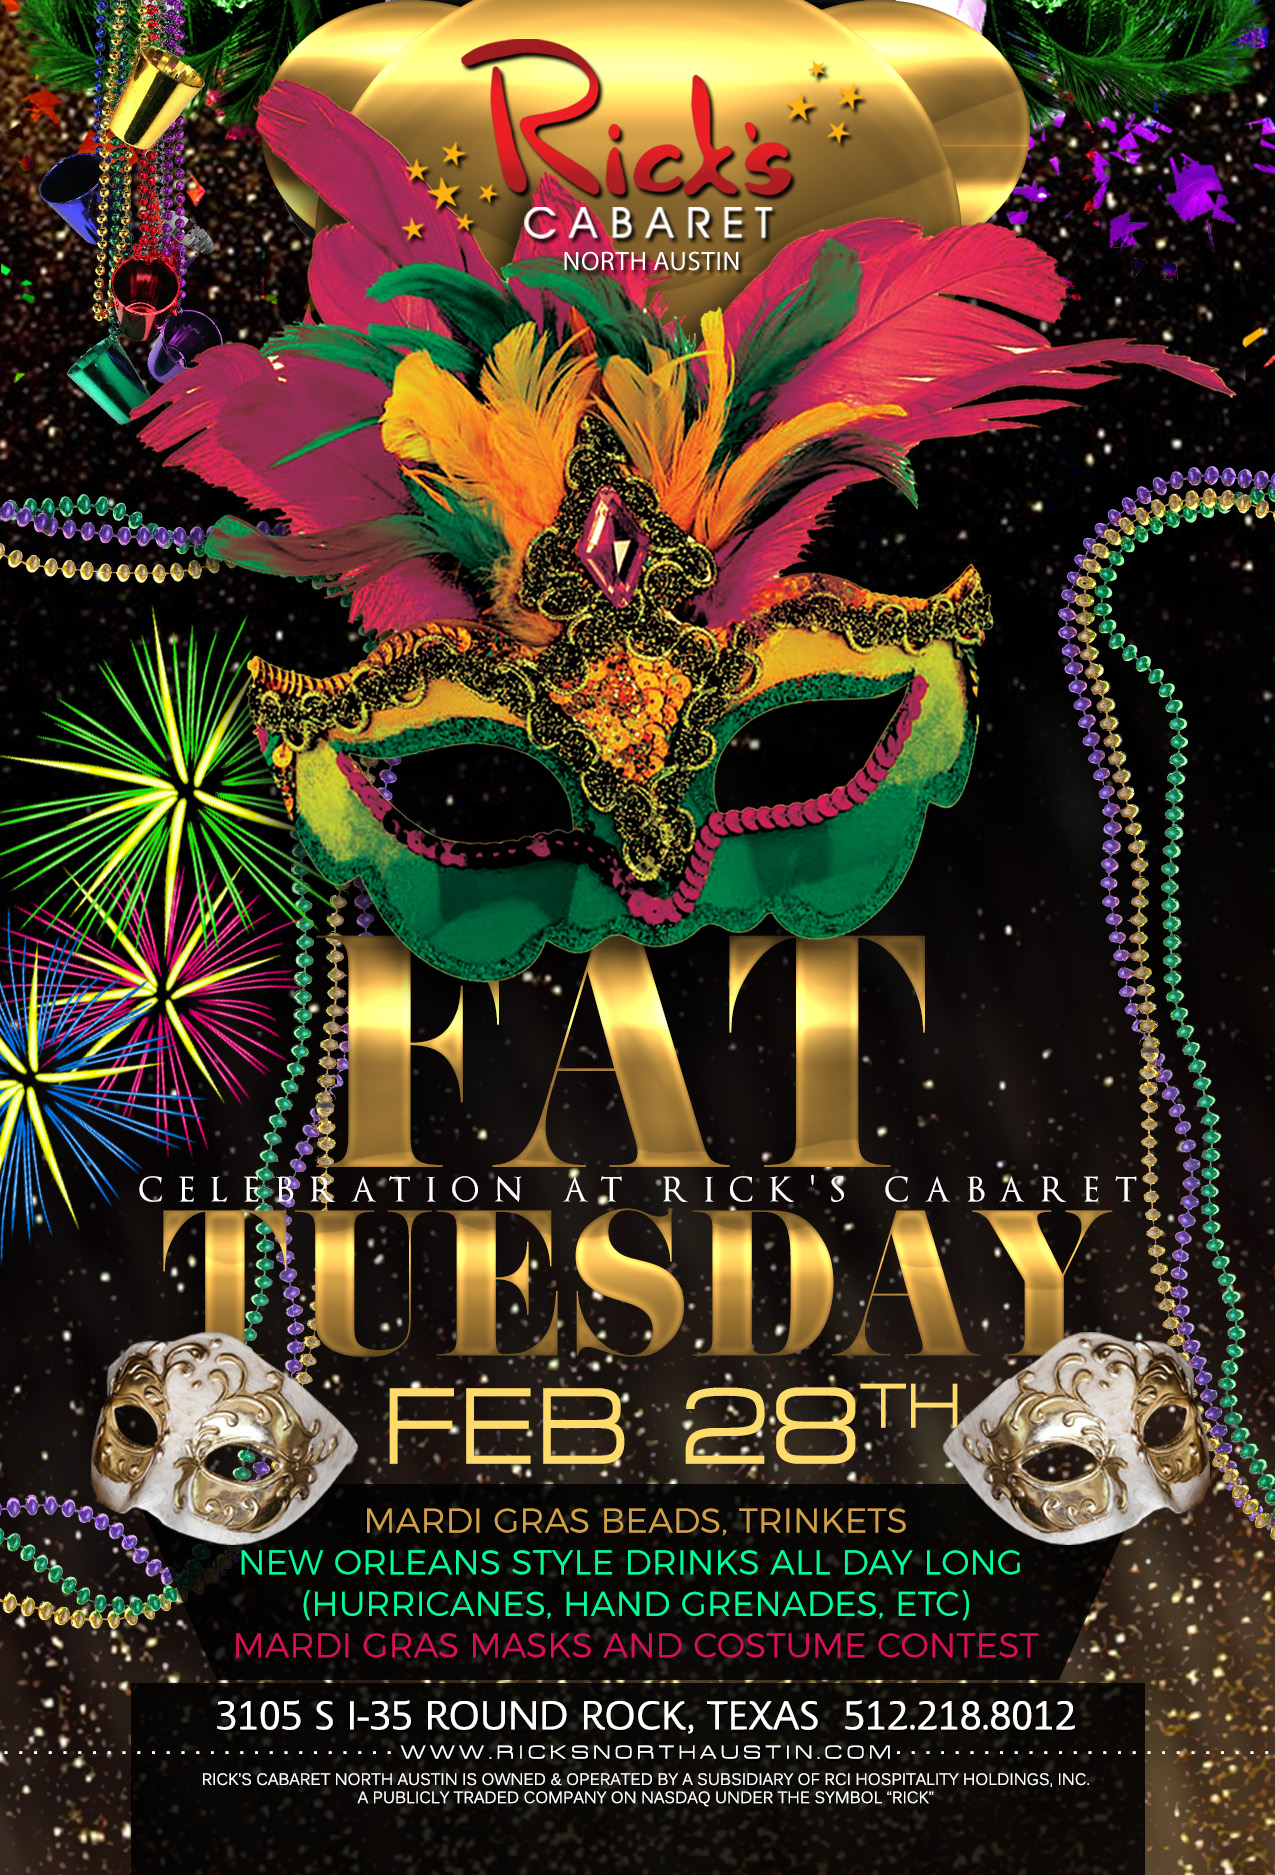 Fat Tuesday celebration at Rick's Cabaret -Mardi Gras beads, trinkets -New Orleans style drinks all day long (Hurricanes, Hand Grenades, etc) - Mardi Gras masks and costume contest